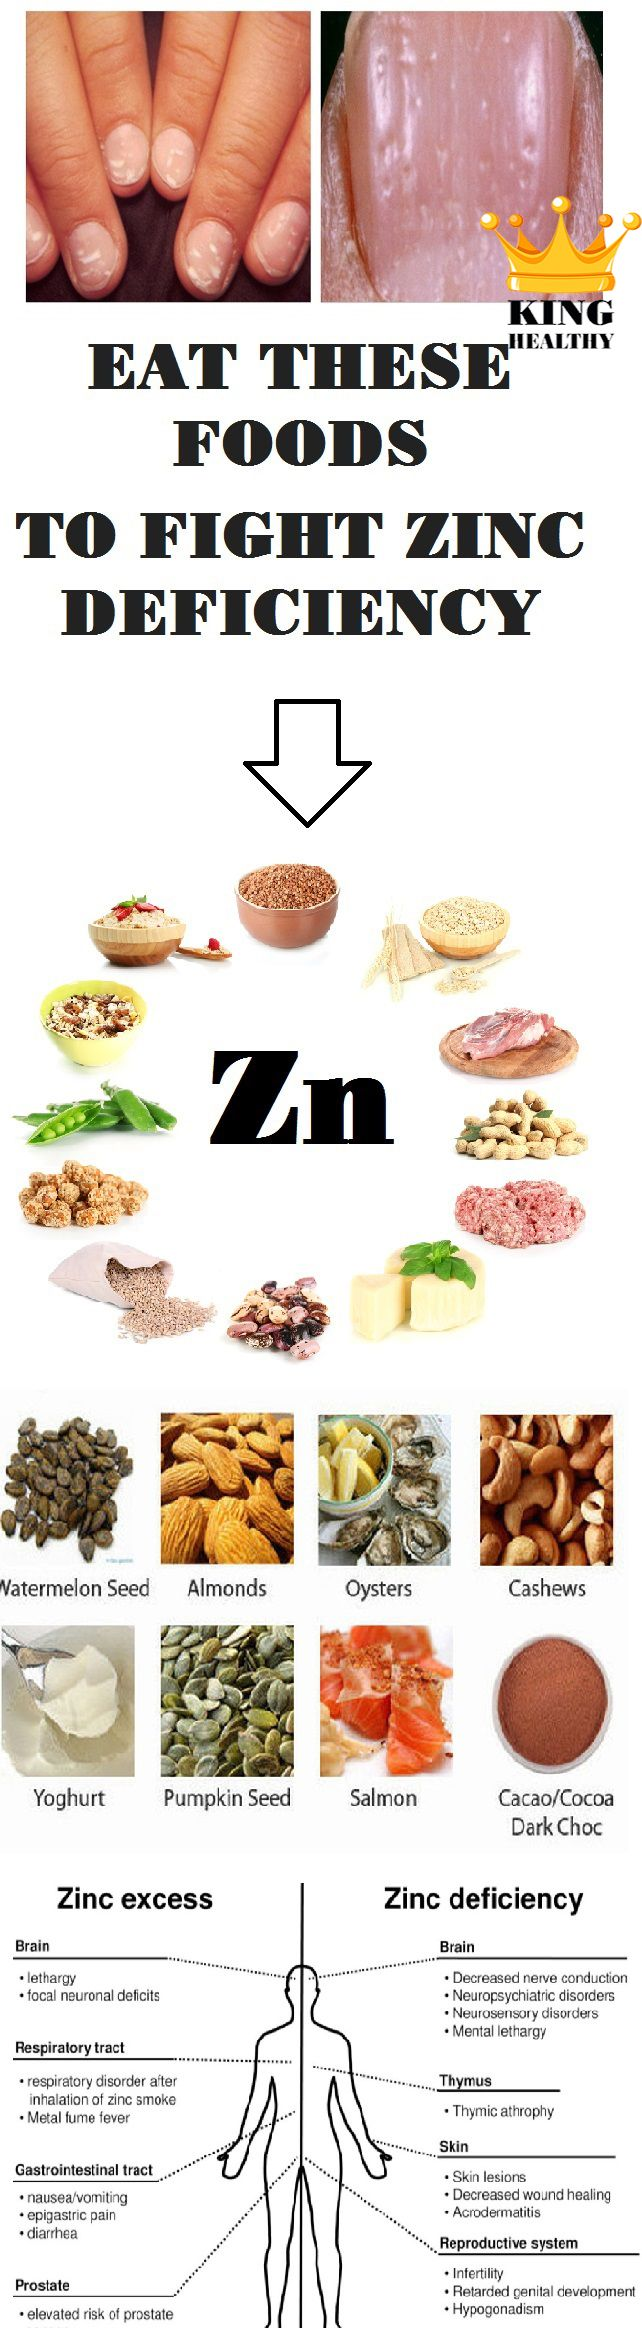 Although commonly overlooked, zinc is one of the essential minerals for proper body function. For one thing, it supports numerous enzymes in the body, strengthens immune system function, and promotes wound healing, synthesis of DNA,[...]